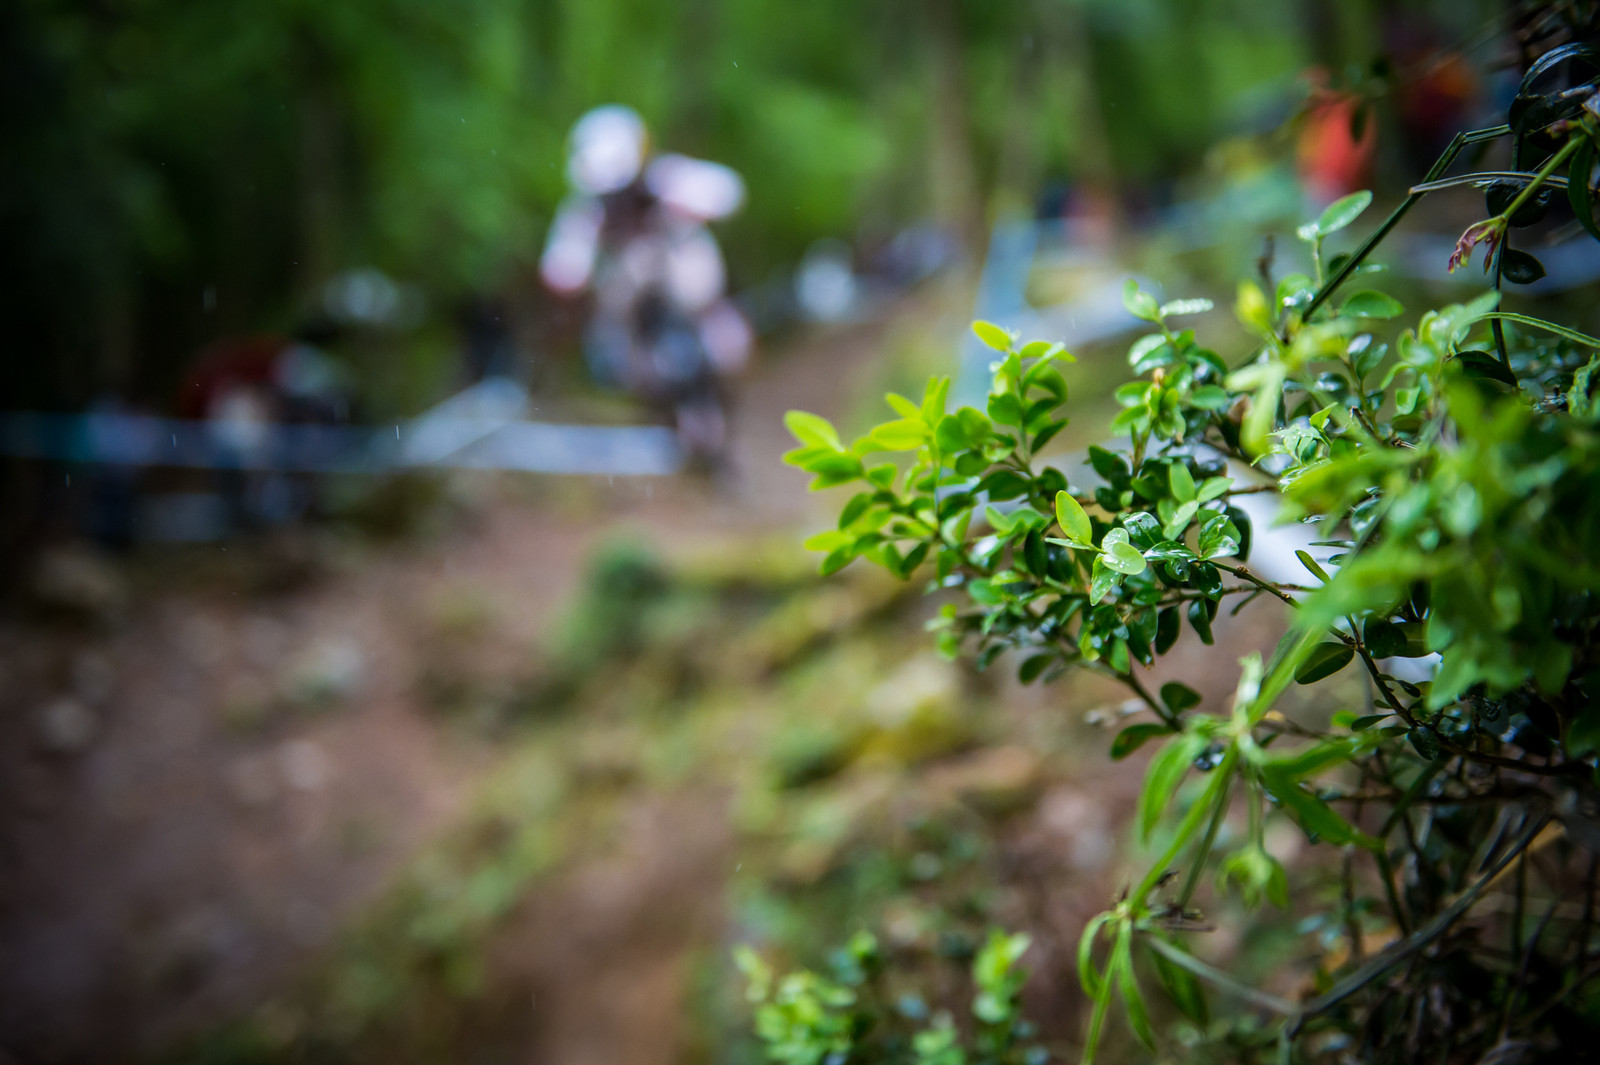 The story of the day. By the time the fastest qualifiers came down, the course was completely impossible to ride. Loic still sent the gully gap in the middle of the monsoon - major NFG.